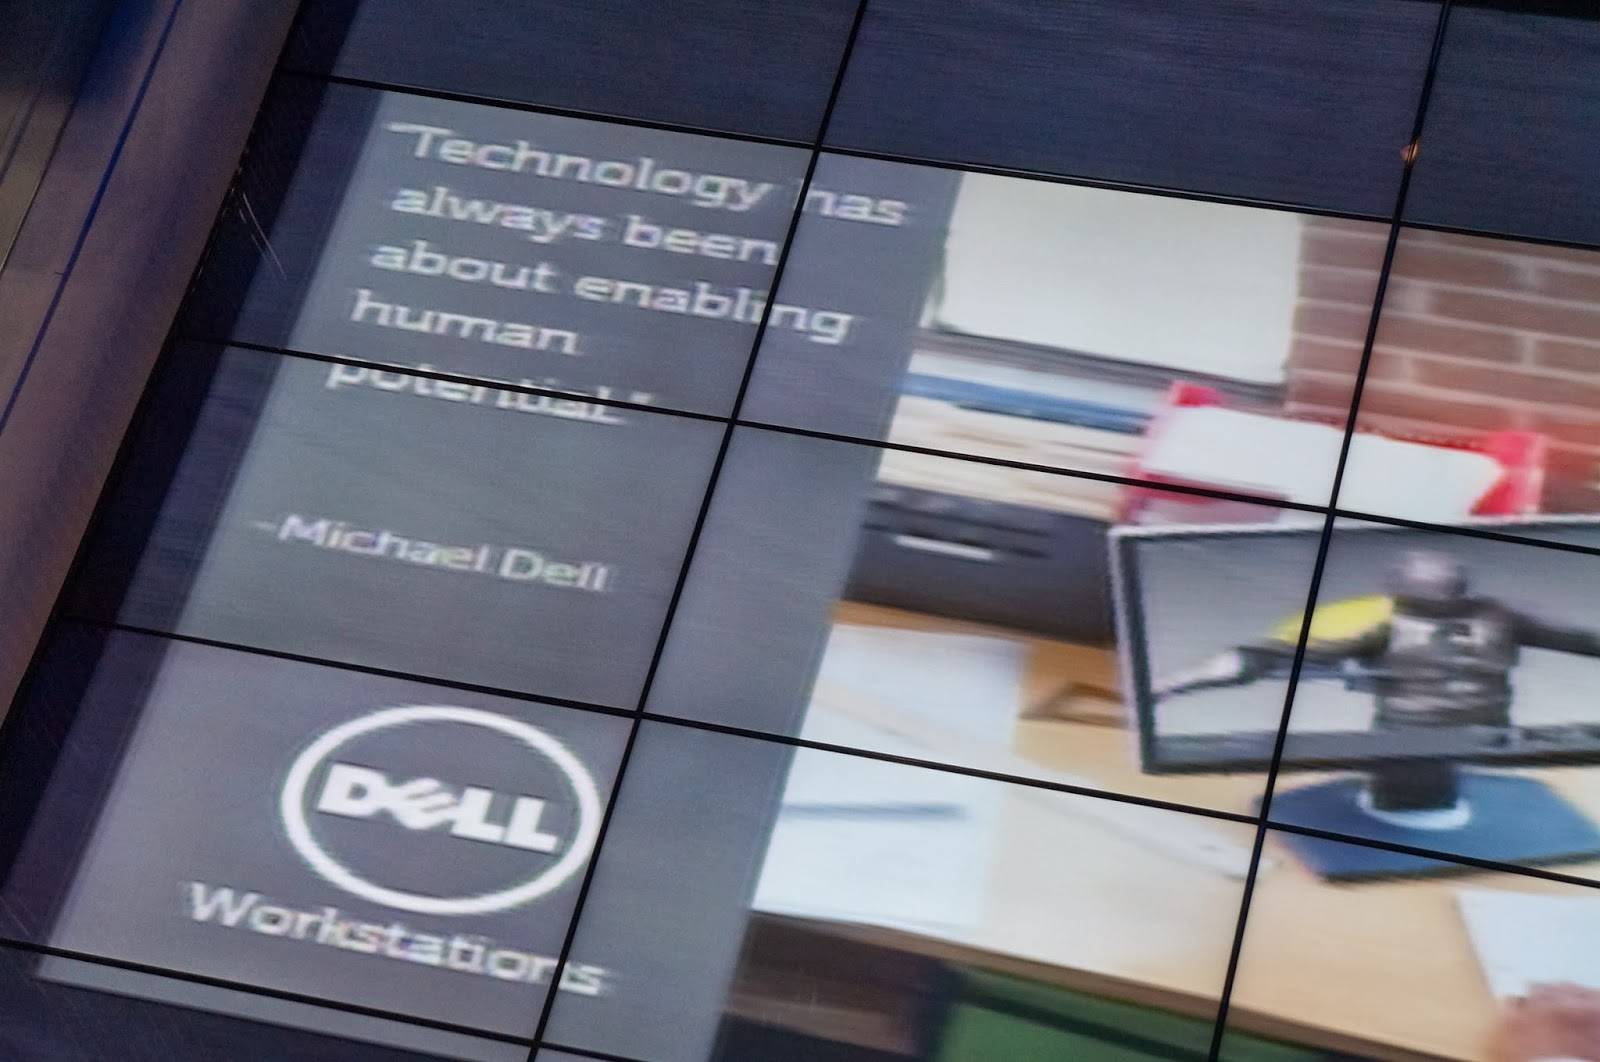 Dell OptiPlex 9020 All-in-One Desktop : Delivers Outstanding